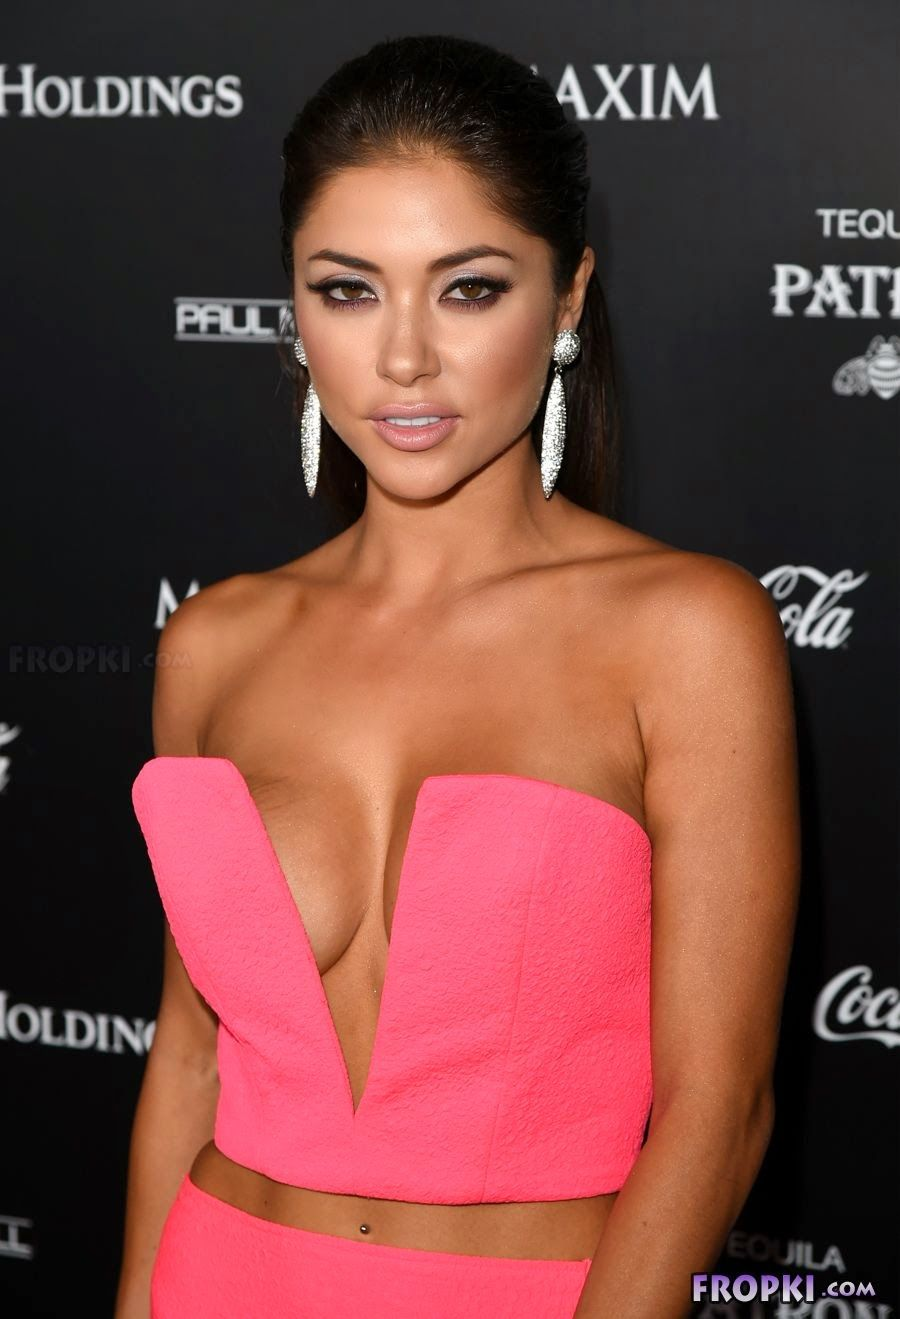 TheFappening Arianny Celeste nude (85 photo), Sexy, Fappening, Selfie, panties 2017